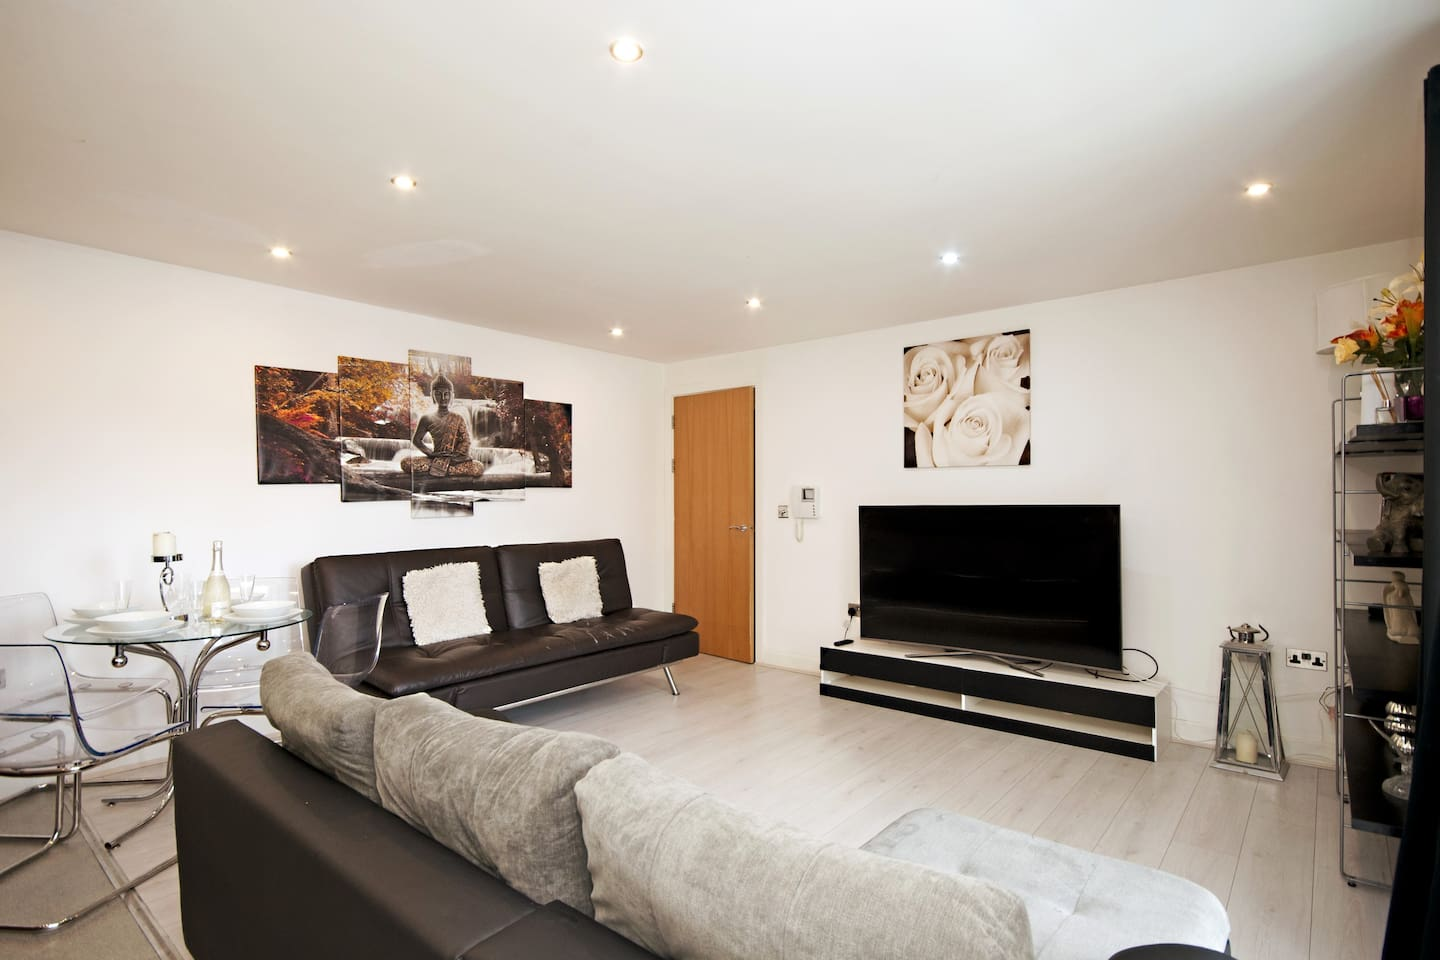 NEWLY REFURBISHED! Brand New 65 inch top of the range LG 4K Television with new Italian imported sofas, laminate flooring, new carpets throughout, Divan beds and high luxury memory foam mattresses